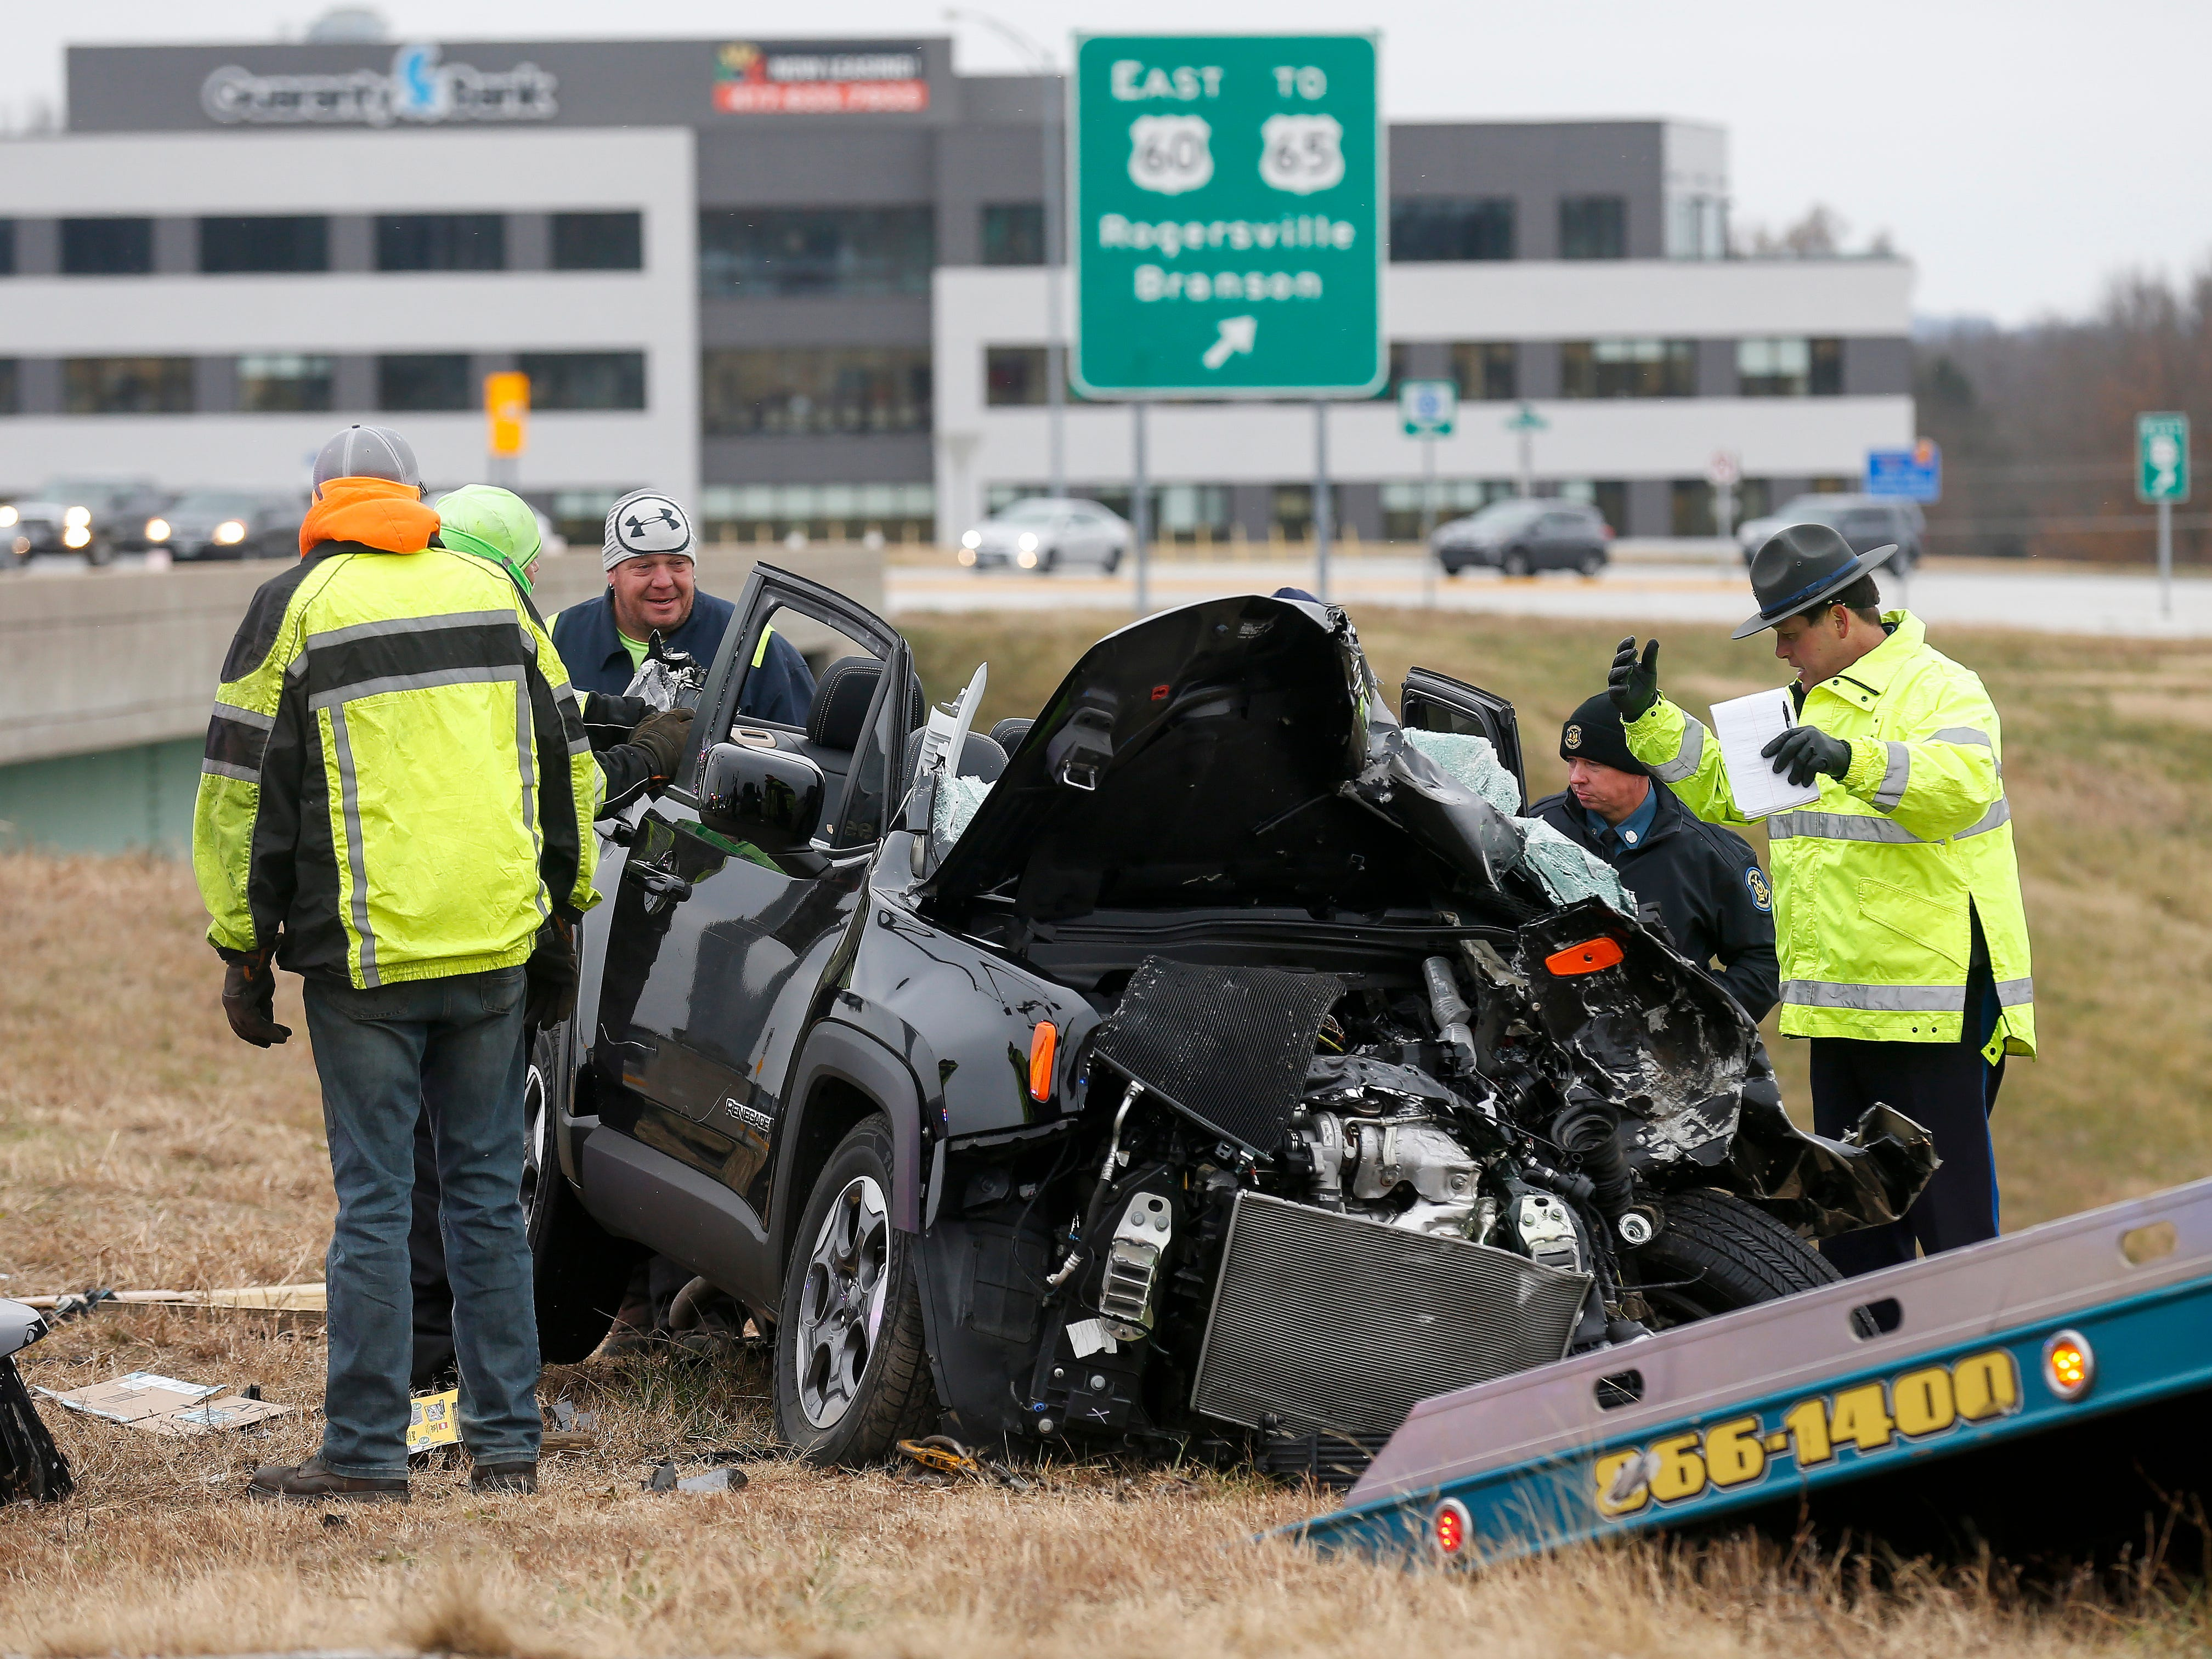 Law enforcement works the scene of a fatal accident near the westbound entrance ramp to James River Freeway at Glenstone Avenue on Tuesday, Dec. 4, 2018.